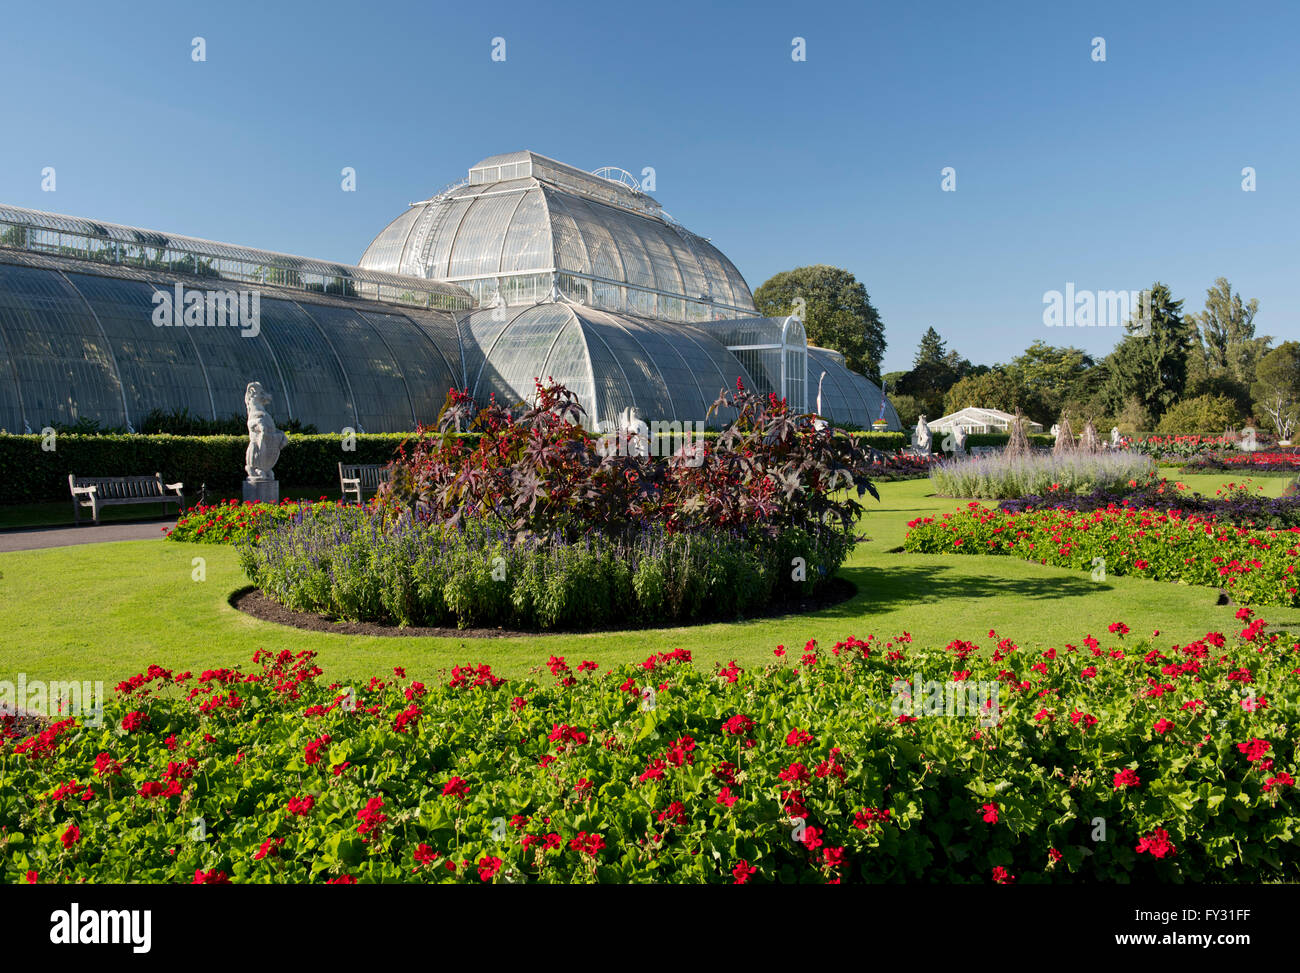 Geraniums on the parterre in front of the Palm House at Kew Gardens, London, UK - Stock Image